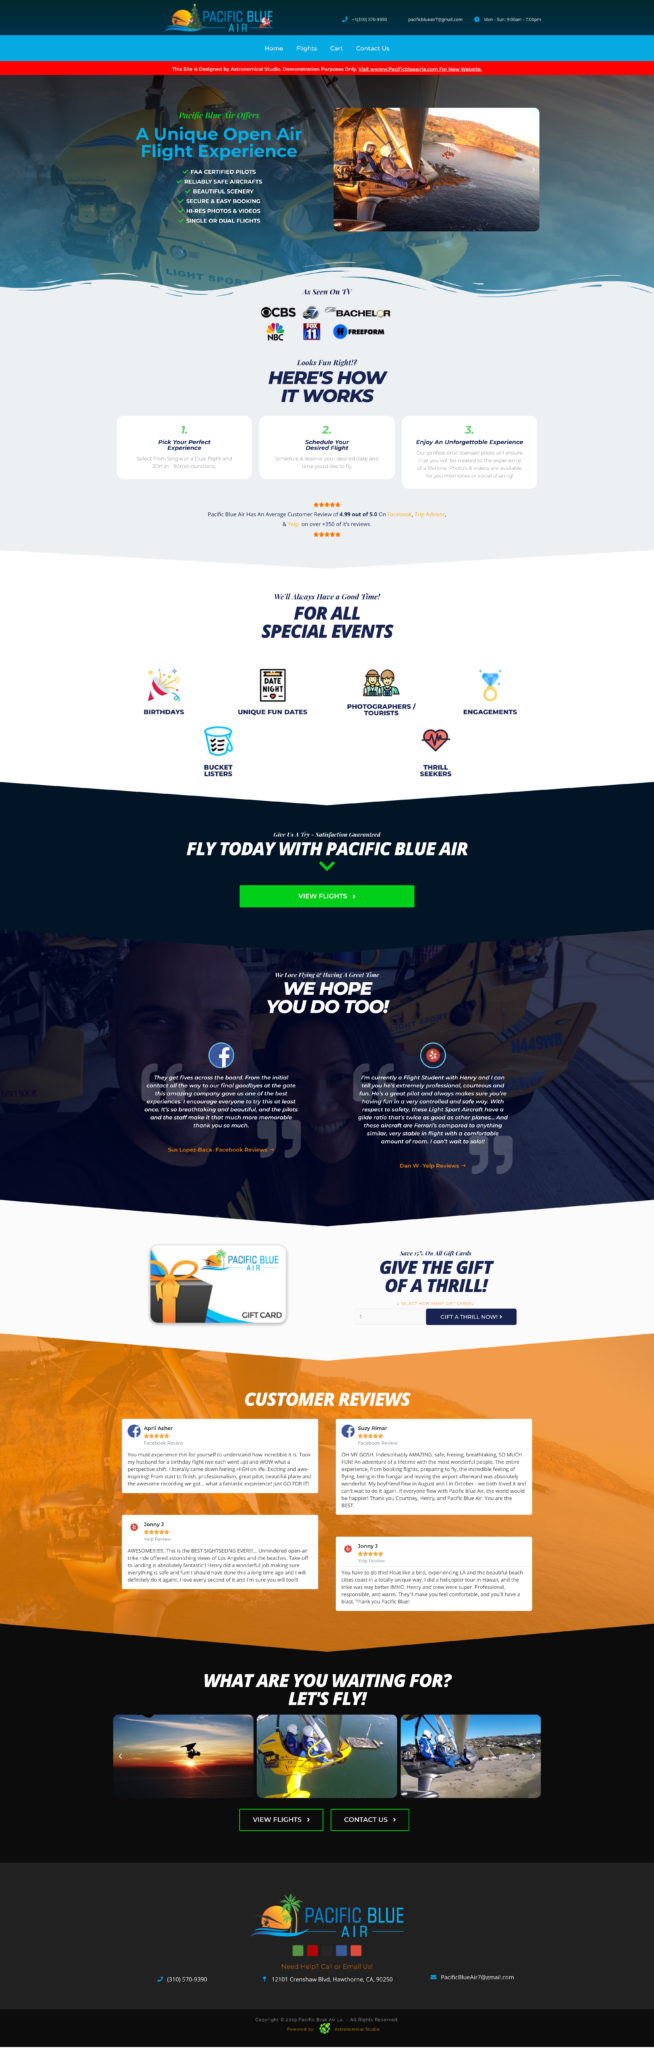 Pacific-Blue-Air-Website-Design-By-Astronomical-Studio